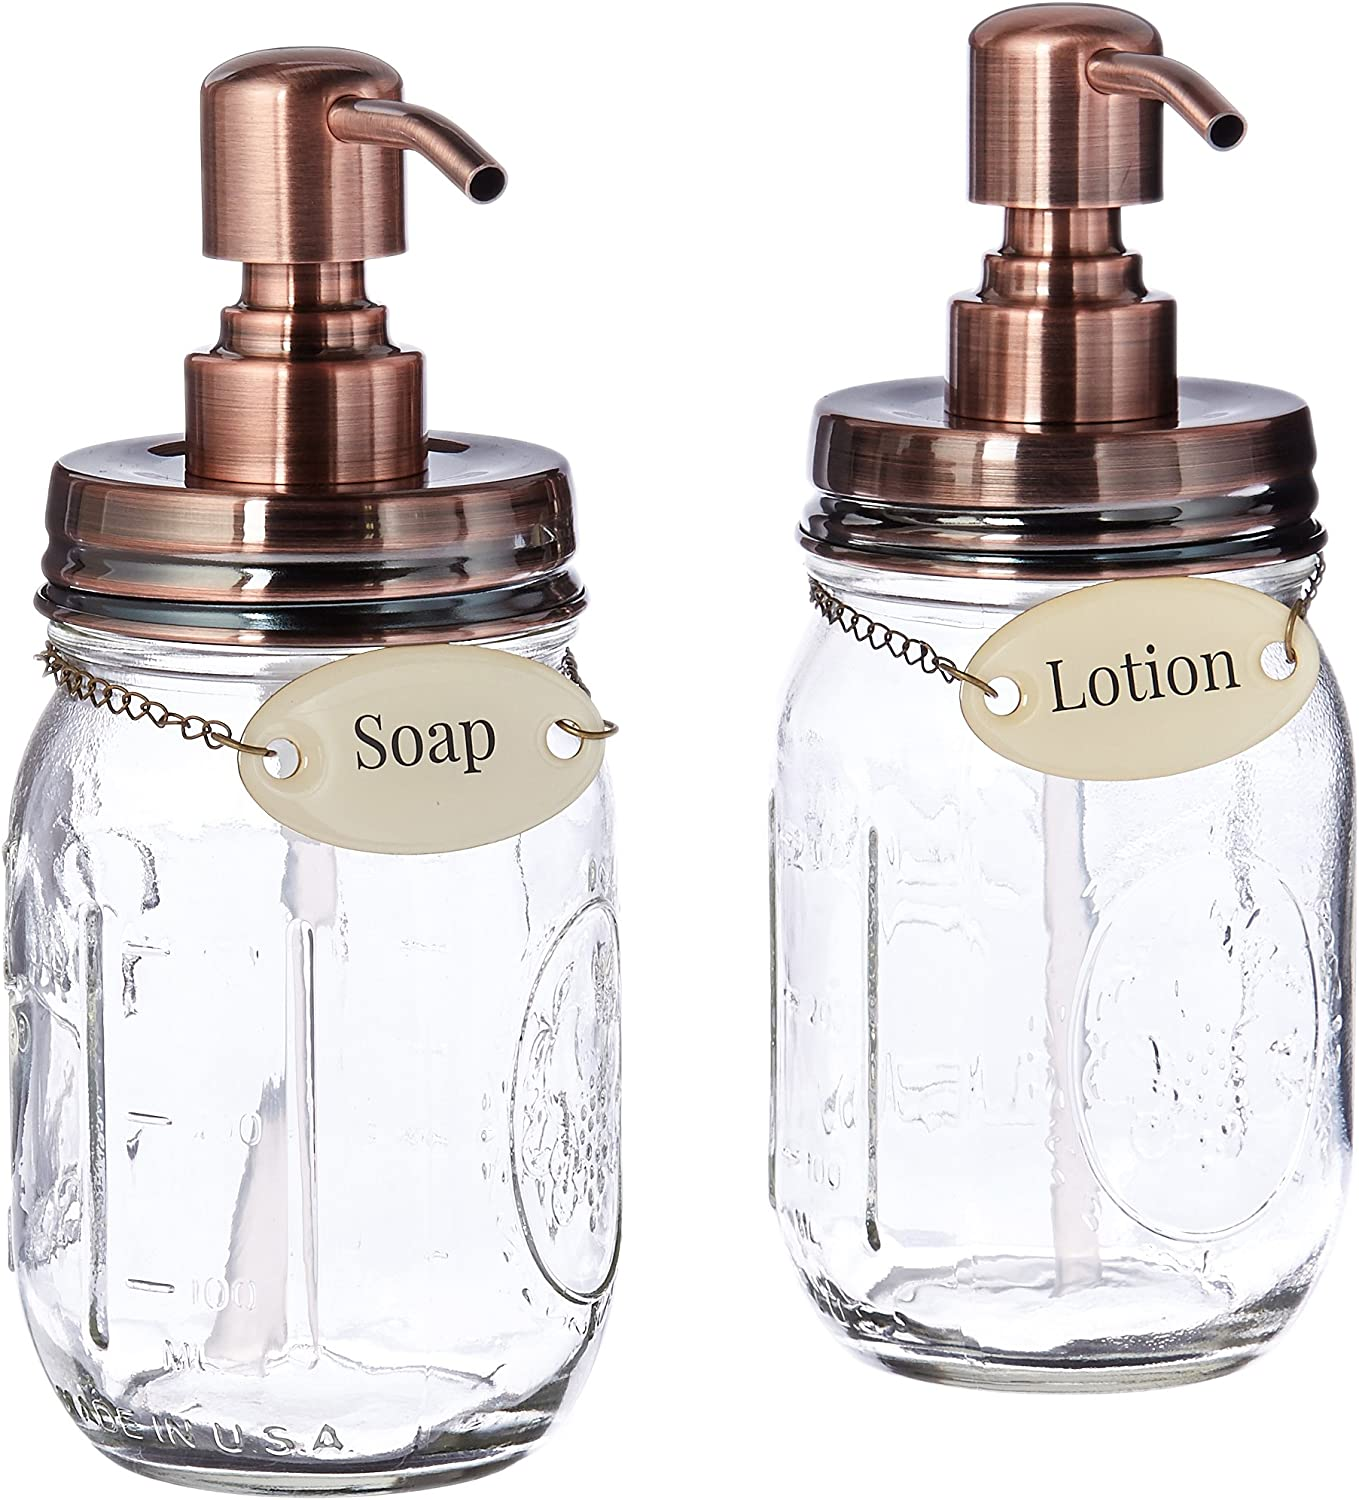 Duke Baron Soap& Lotion Soap & Lotion Set of Vintage Style Mason Jar Lotion and Soap Dispenser with Antique Finish and Brass Name Tags